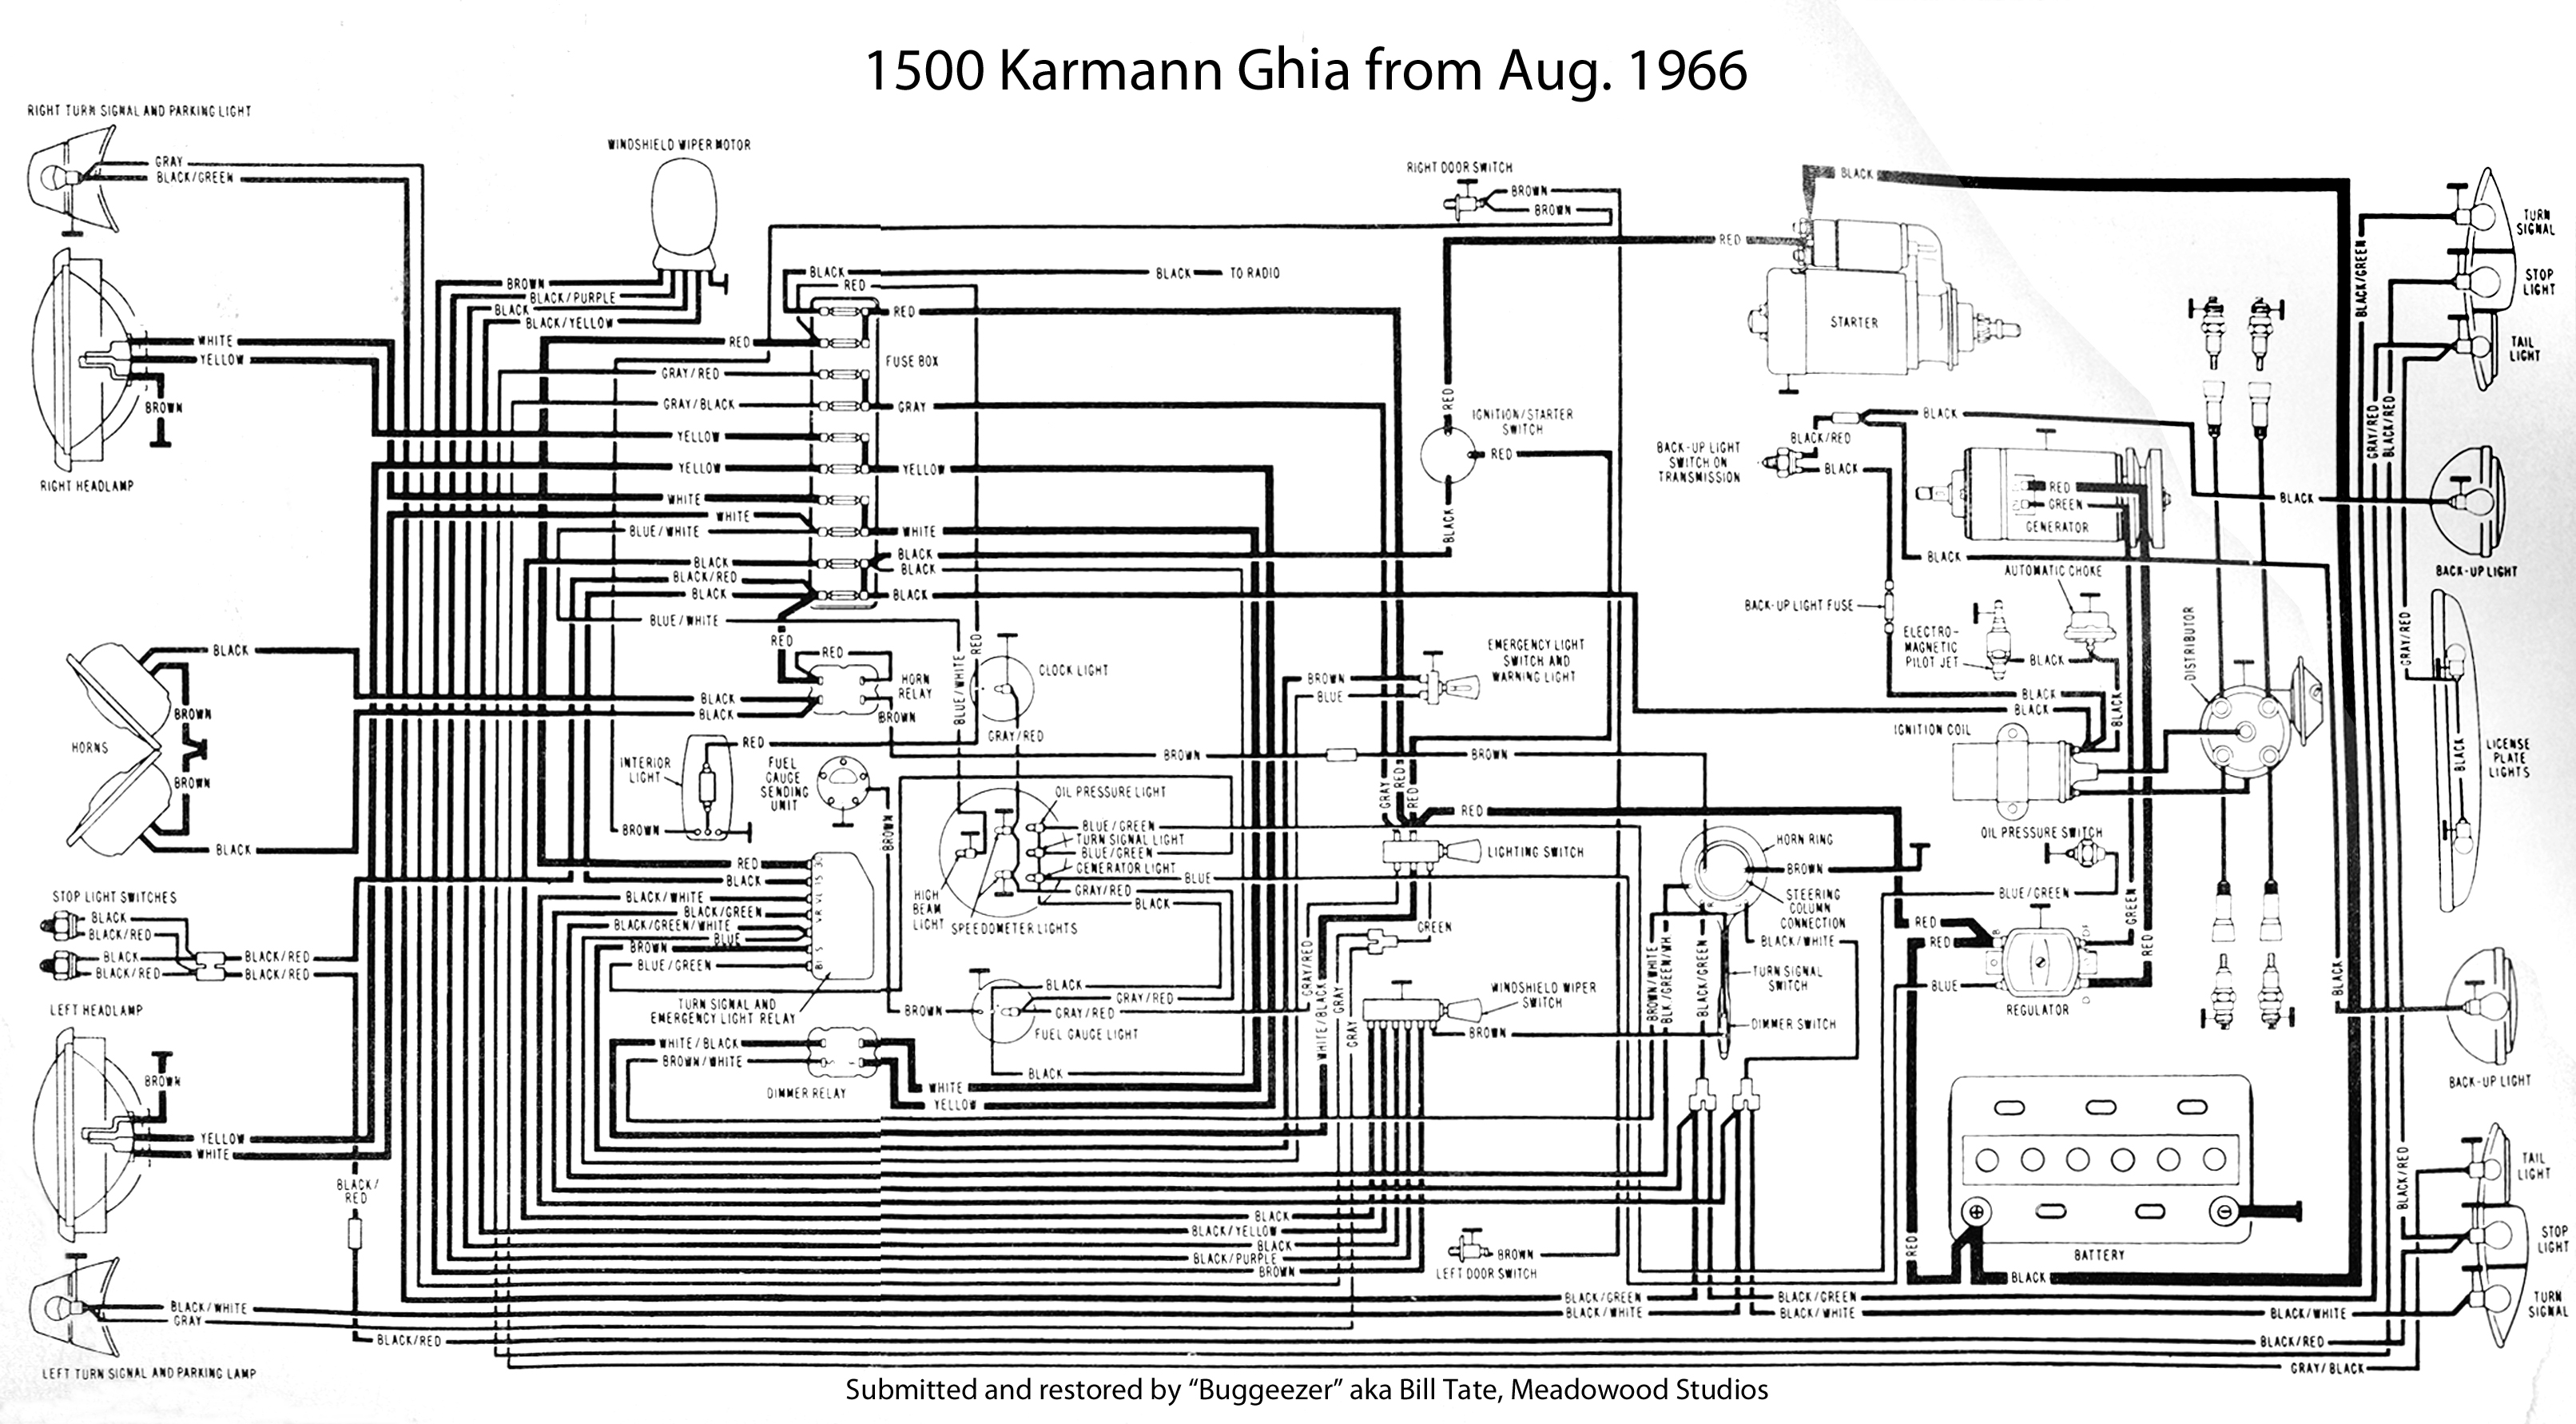 1500_Karmann_Ghia_Motors Understanding Car Wiring Diagrams on understanding schematic diagrams, understanding ladder diagrams, understanding foundation diagrams, understanding transformer diagrams, electronic circuit diagrams, understanding engineering drawings, understanding electrical diagrams, understanding circuits diagrams, pinout diagrams,